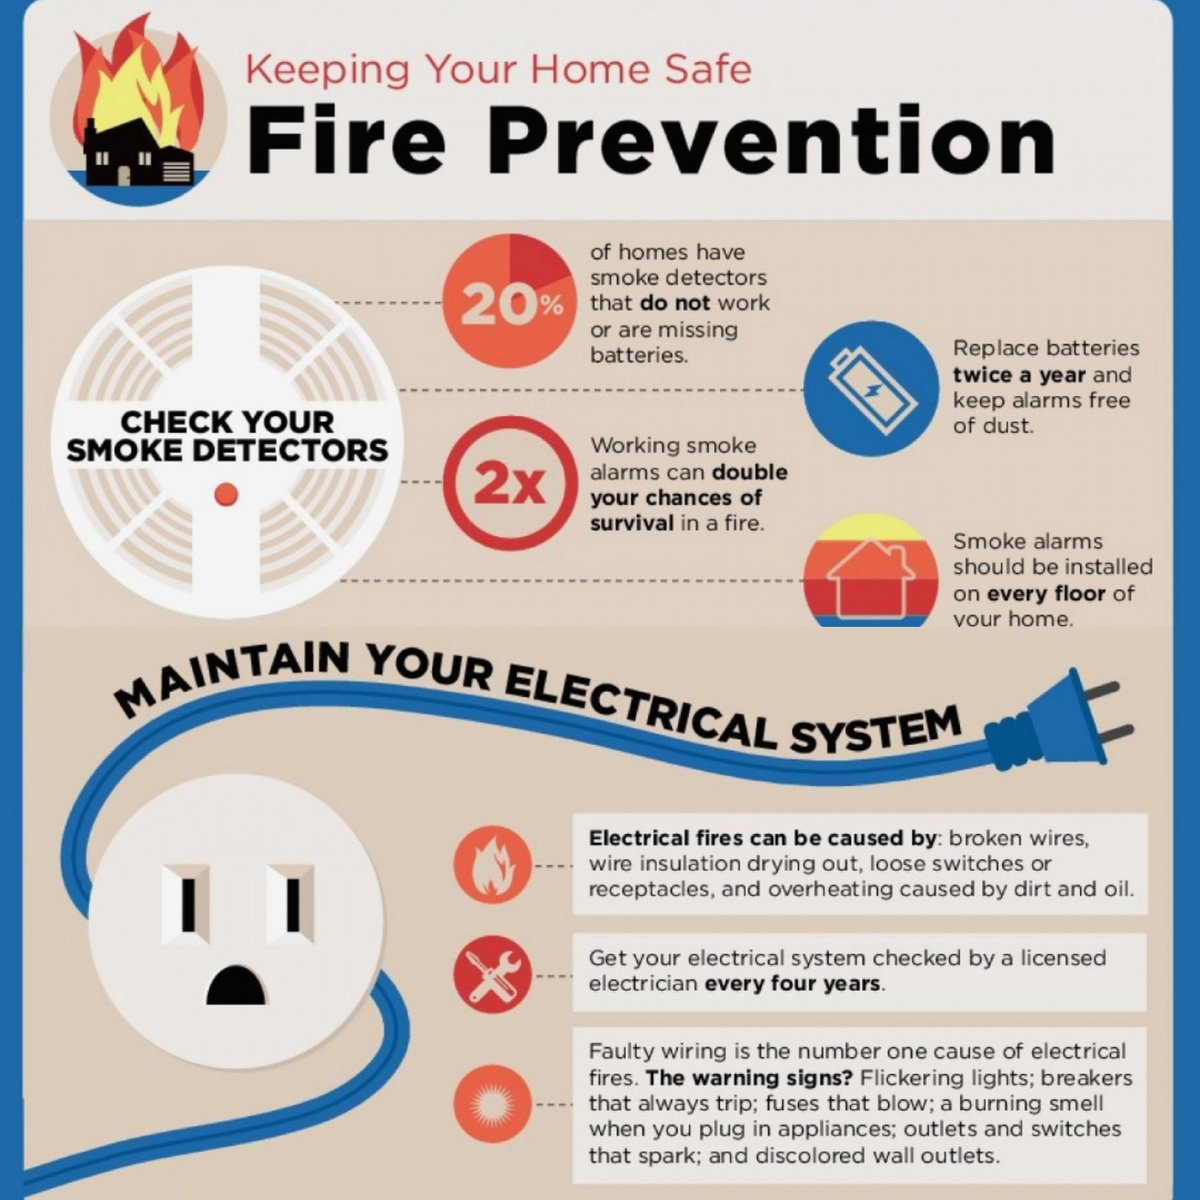 Pd Fire And Safety Pdfireandsafety Twitter Result In Overheating A Always Protect Wire With Fuse 1 Reply 0 Retweets Like